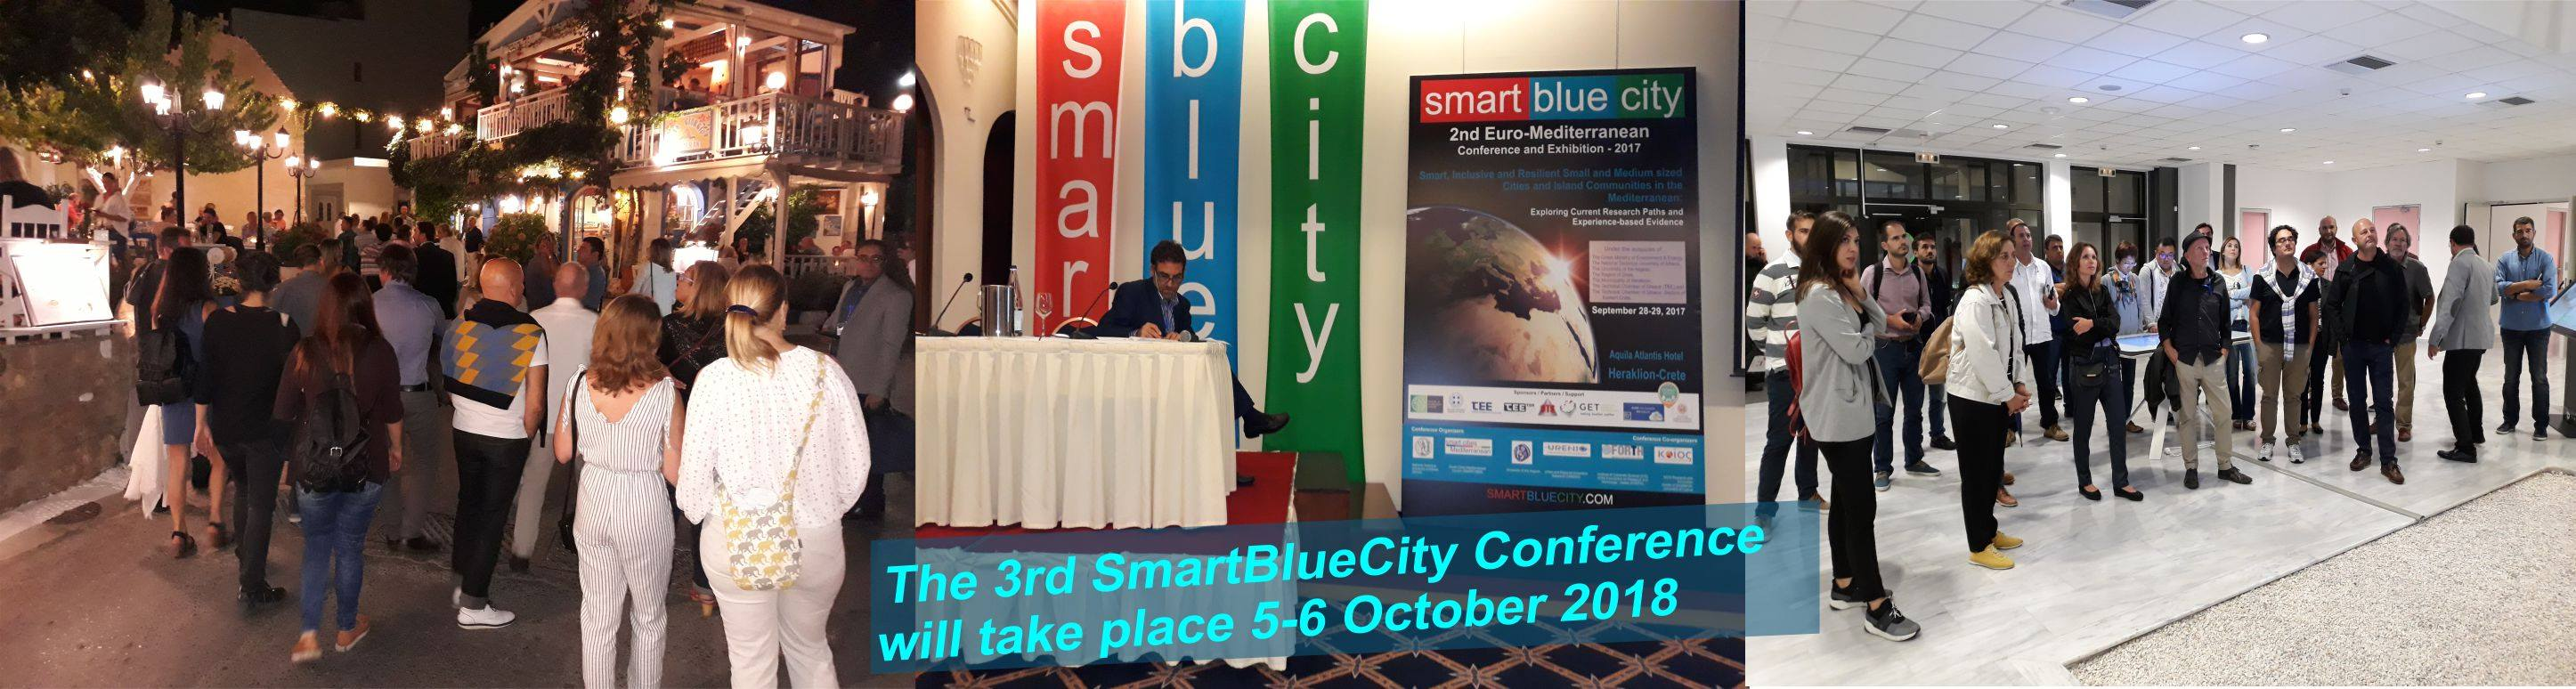 3rd SmartBlueCity Conference & Exhibition 2018 cyprus cyprusinno event events